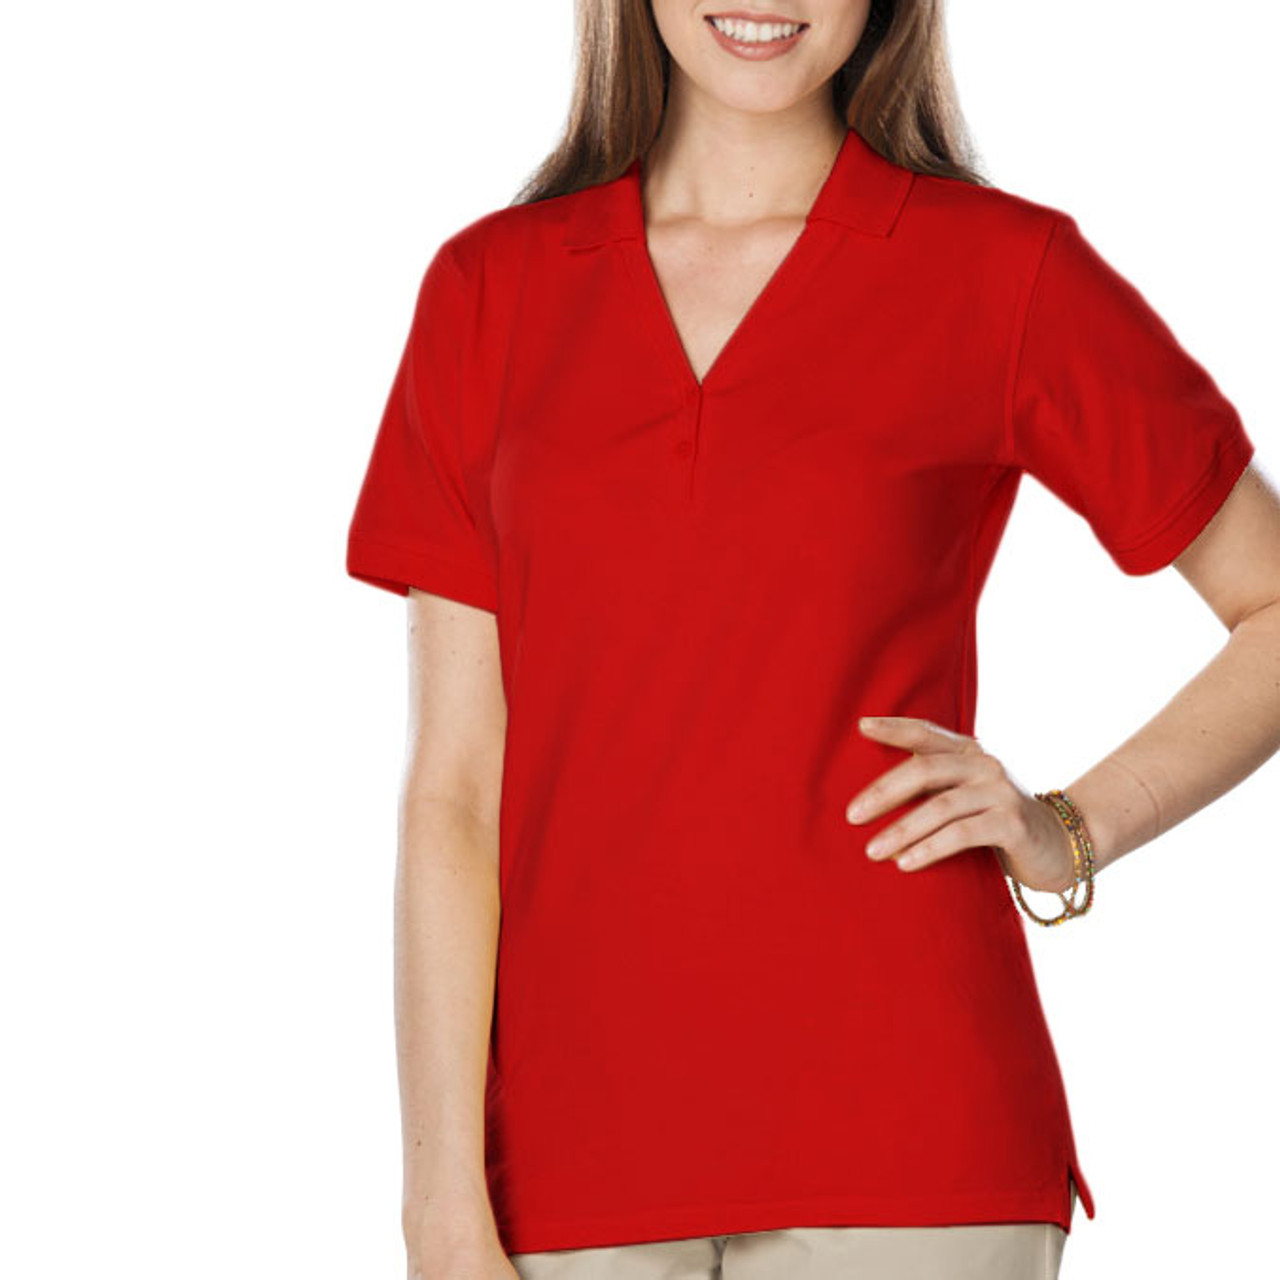 Women's short sleeve uniform polo